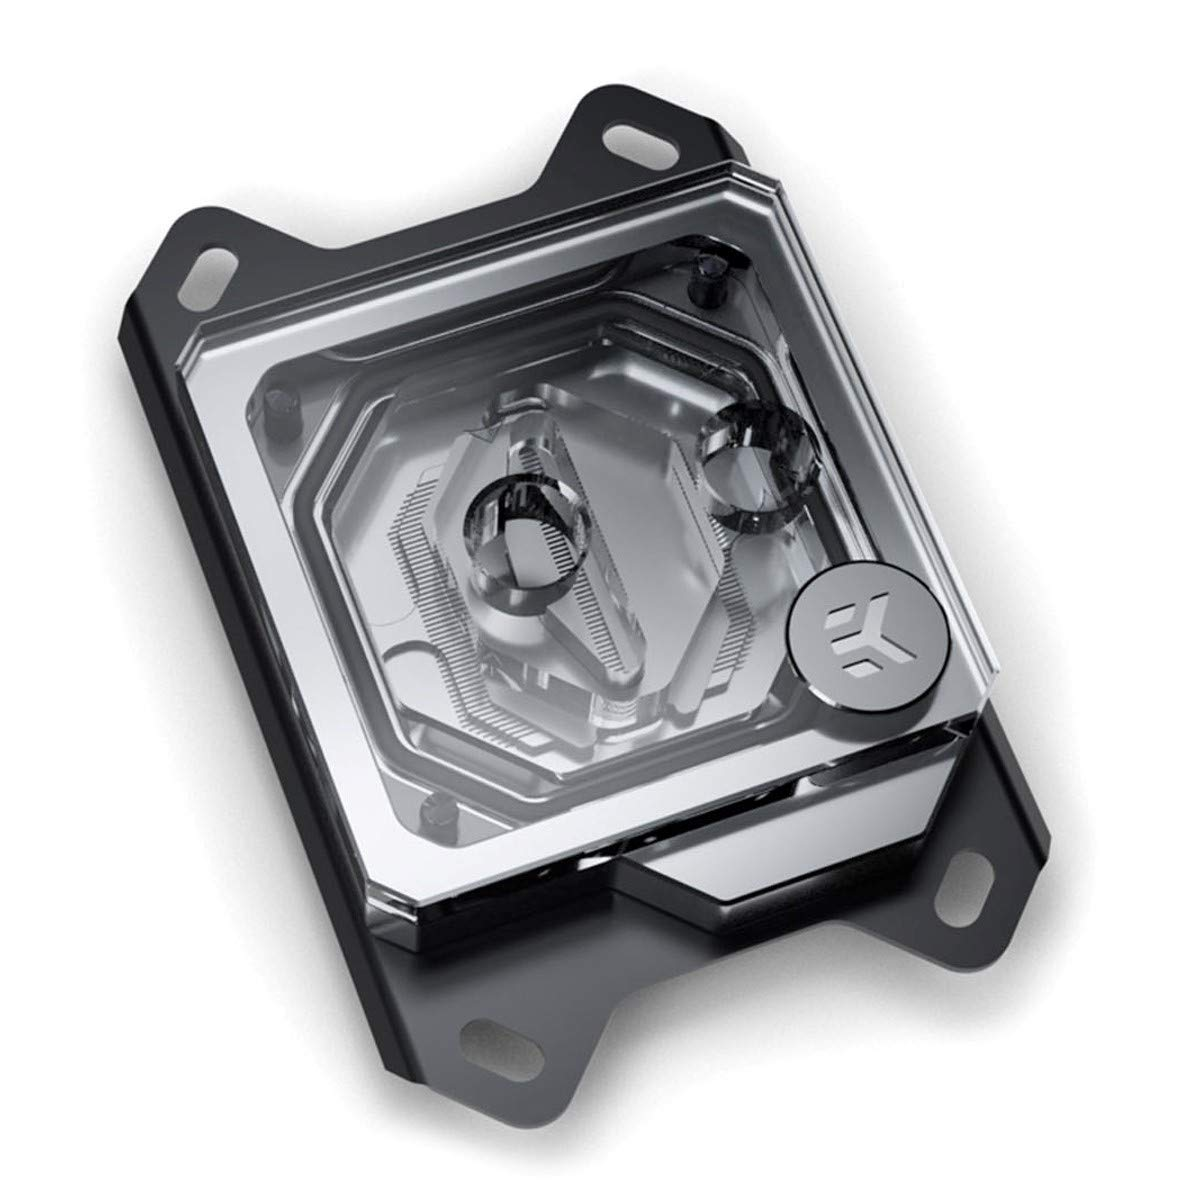 EKWB EK-Velocity CPU Waterblock, RGB, AMD CPU, Nickel/Plexi